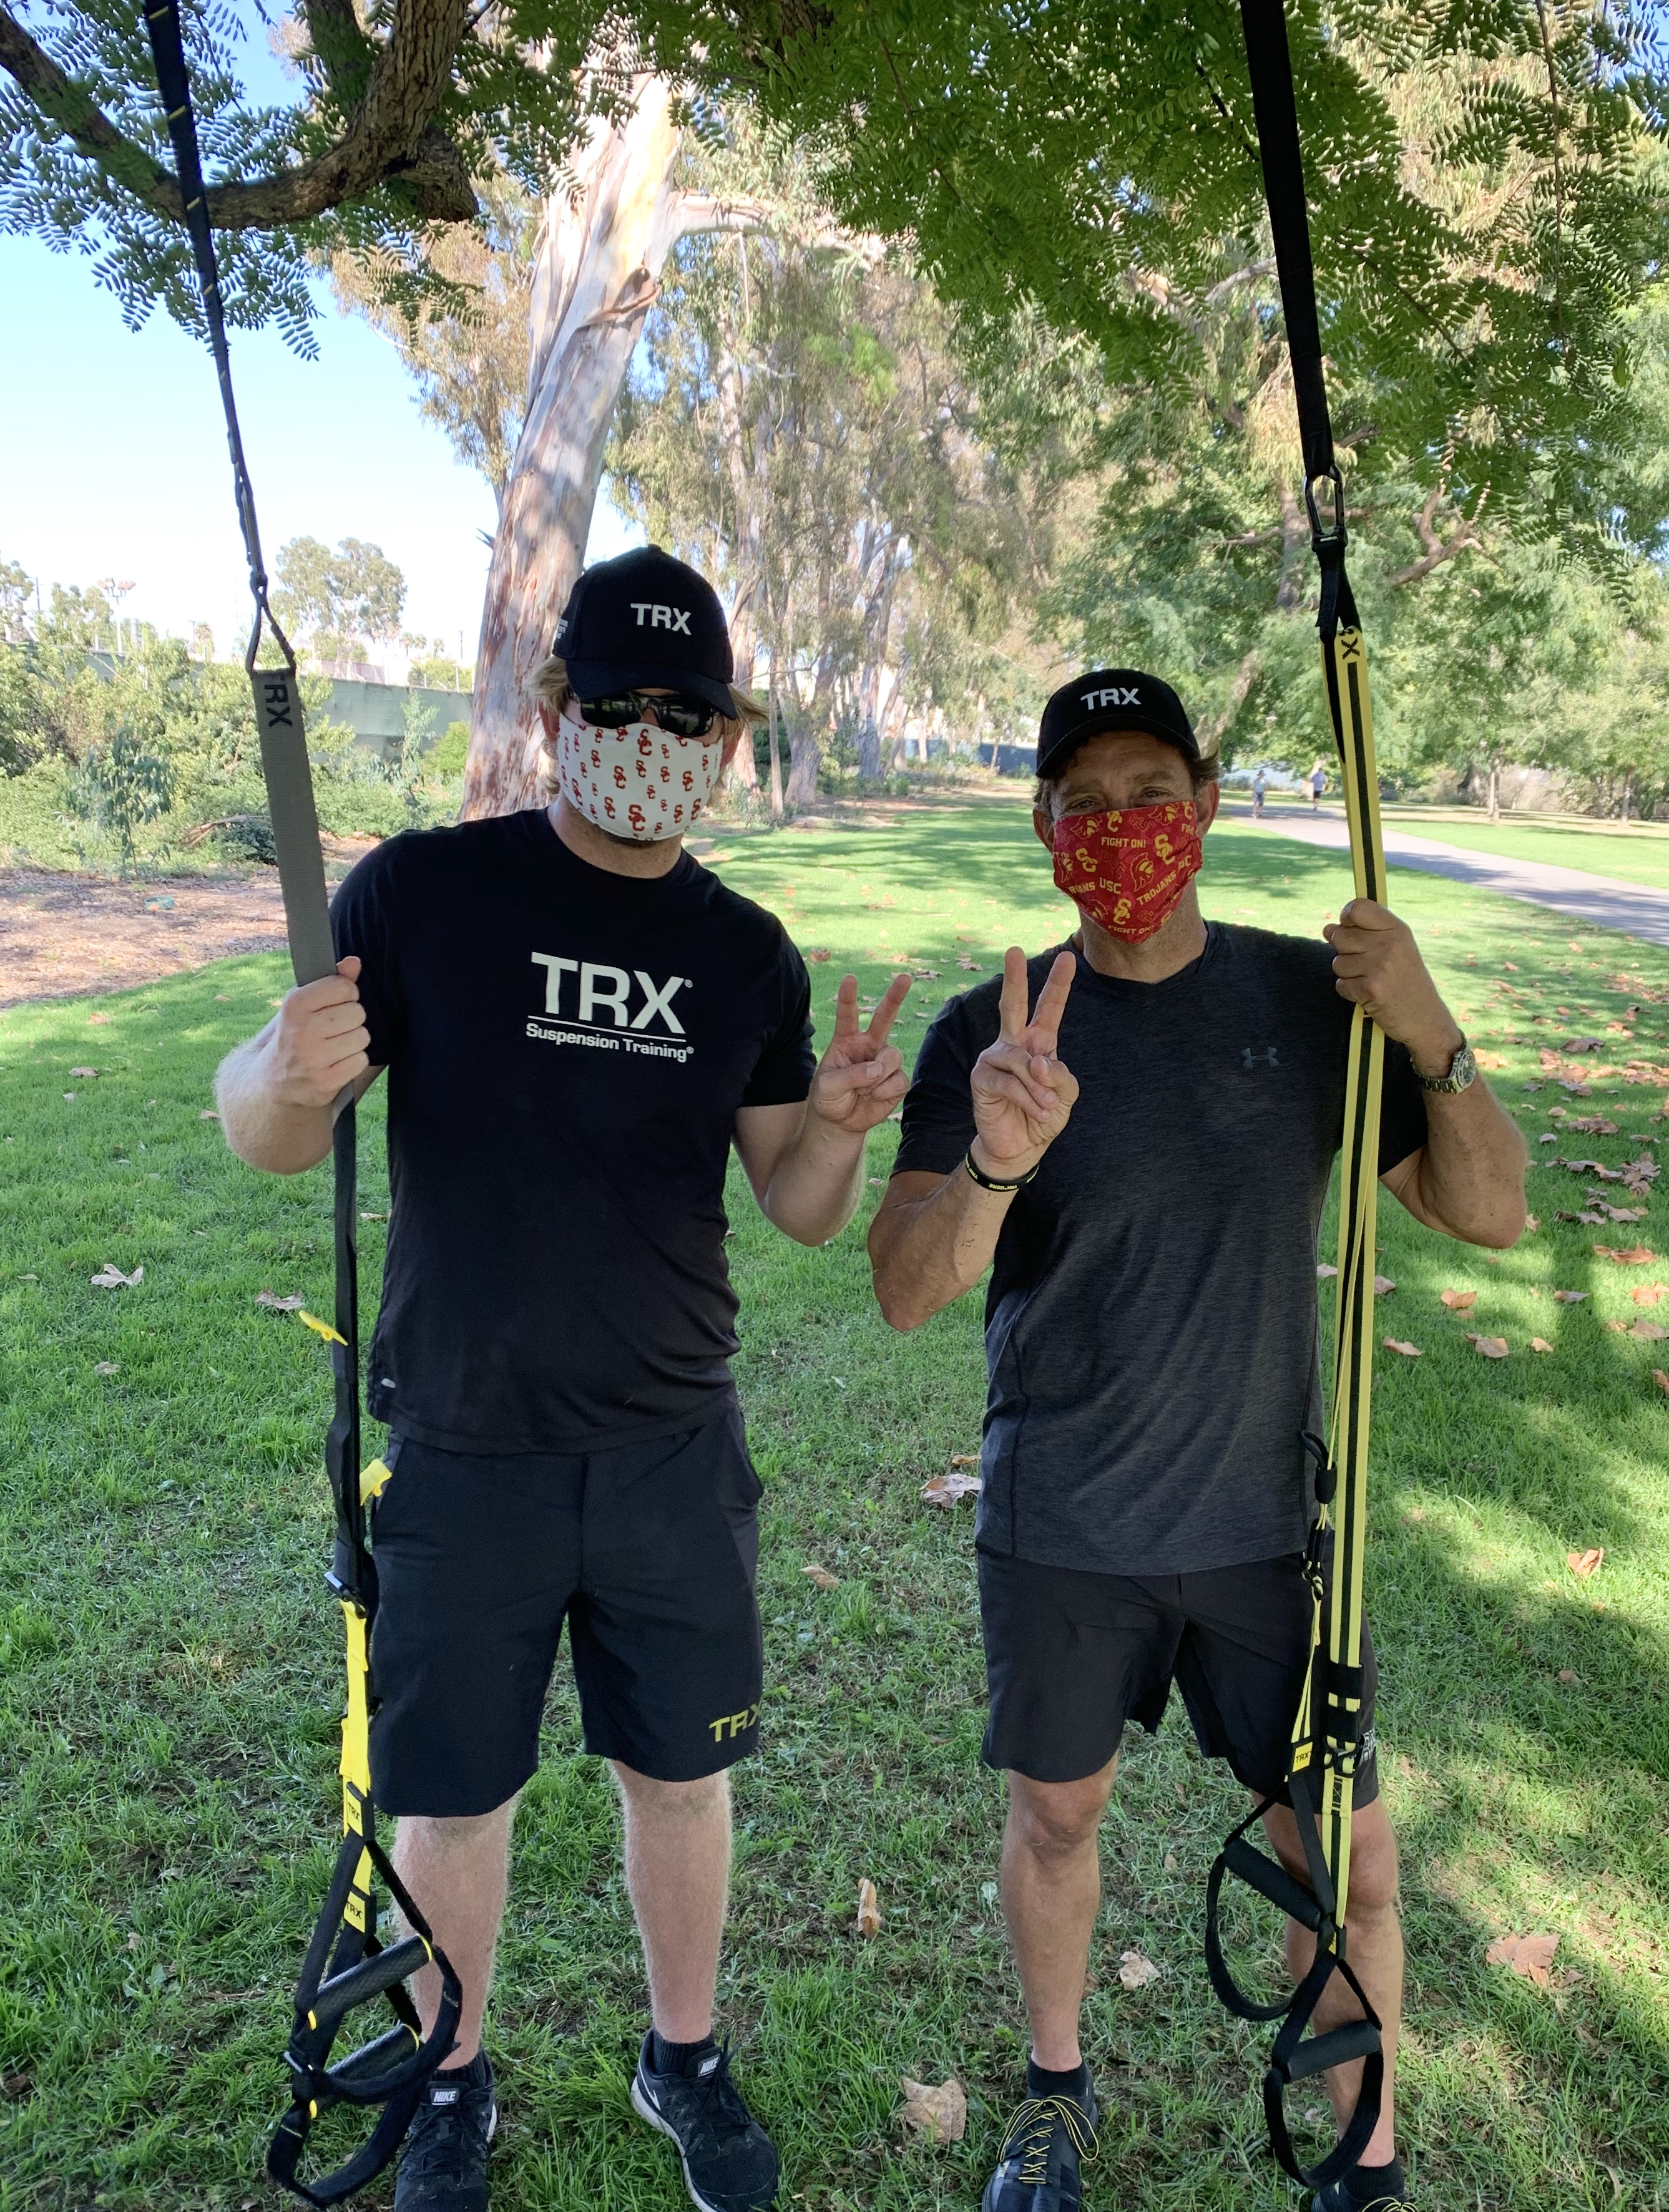 Jake Olson (left) and Randy Hetrick (right) pose with their Suspension Trainers after a TRX workout